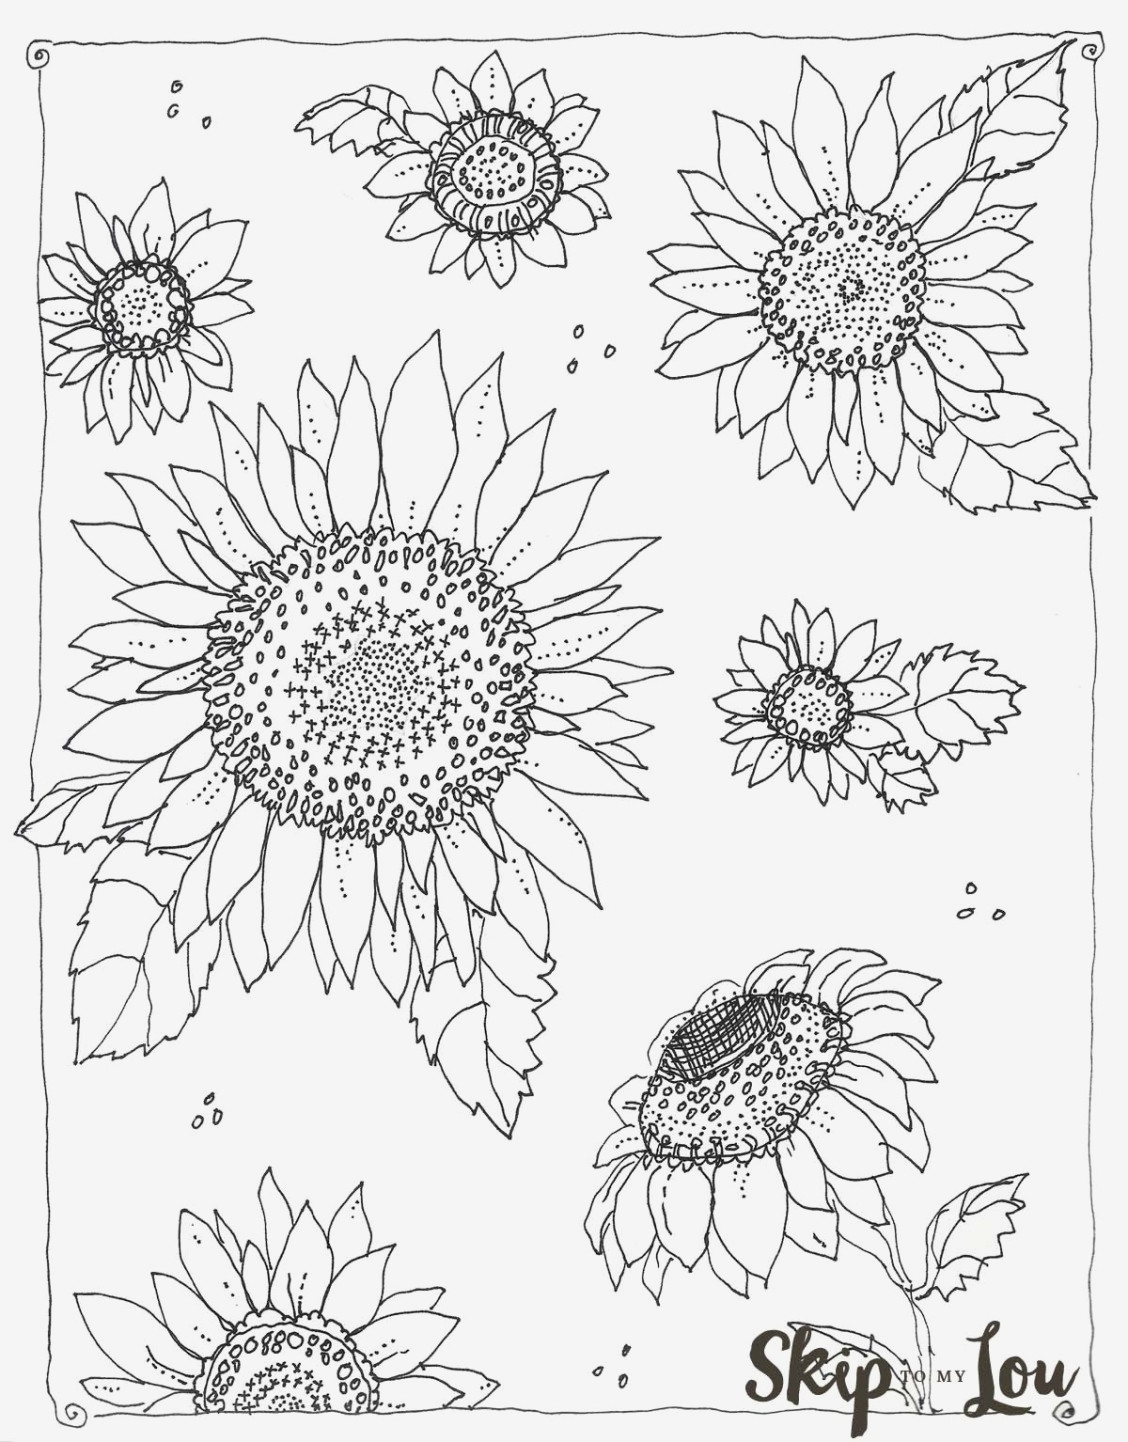 custom photo flower vase of free flower coloring pages the first ever custom cool vases flower regarding free flower coloring pages free print new fresh s s media cache ak0 pinimg originals 0d b4